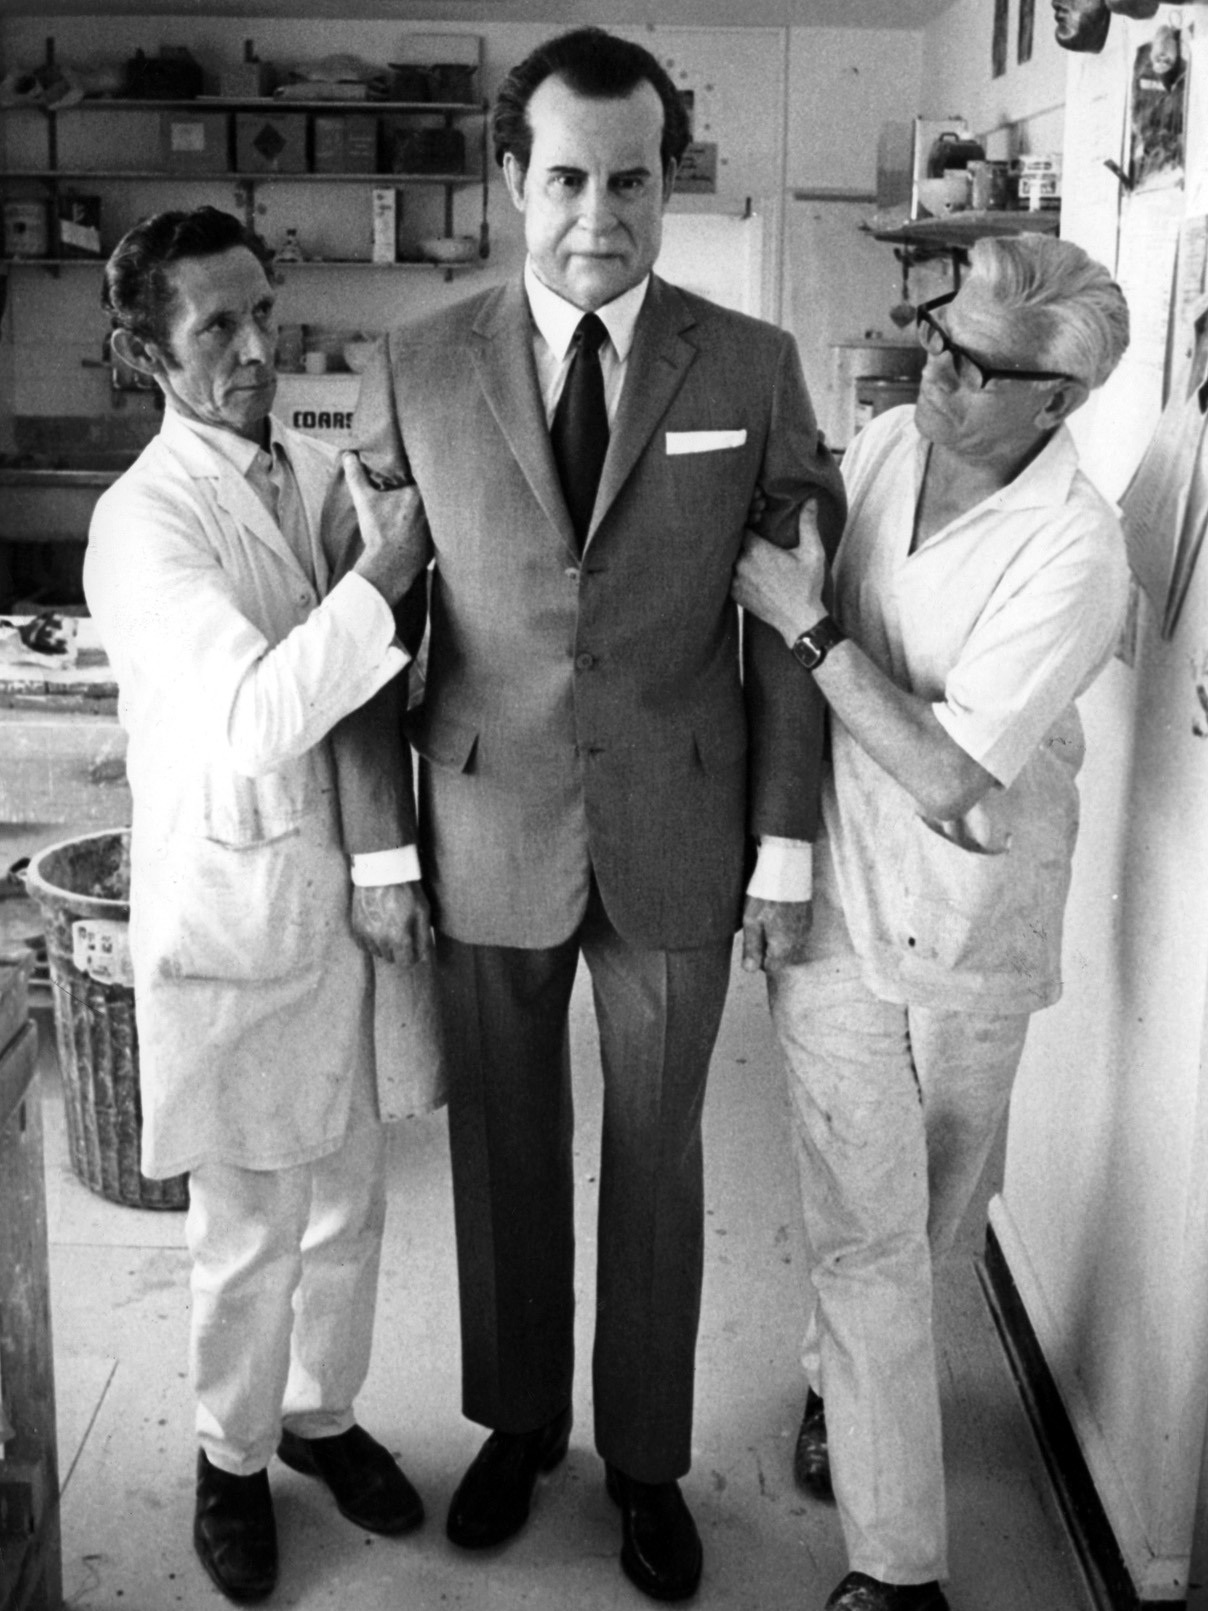 Richard Nixon waxwork being removed from Madame Tussauds, London, 1974. © HIP/ Art Resource, NY